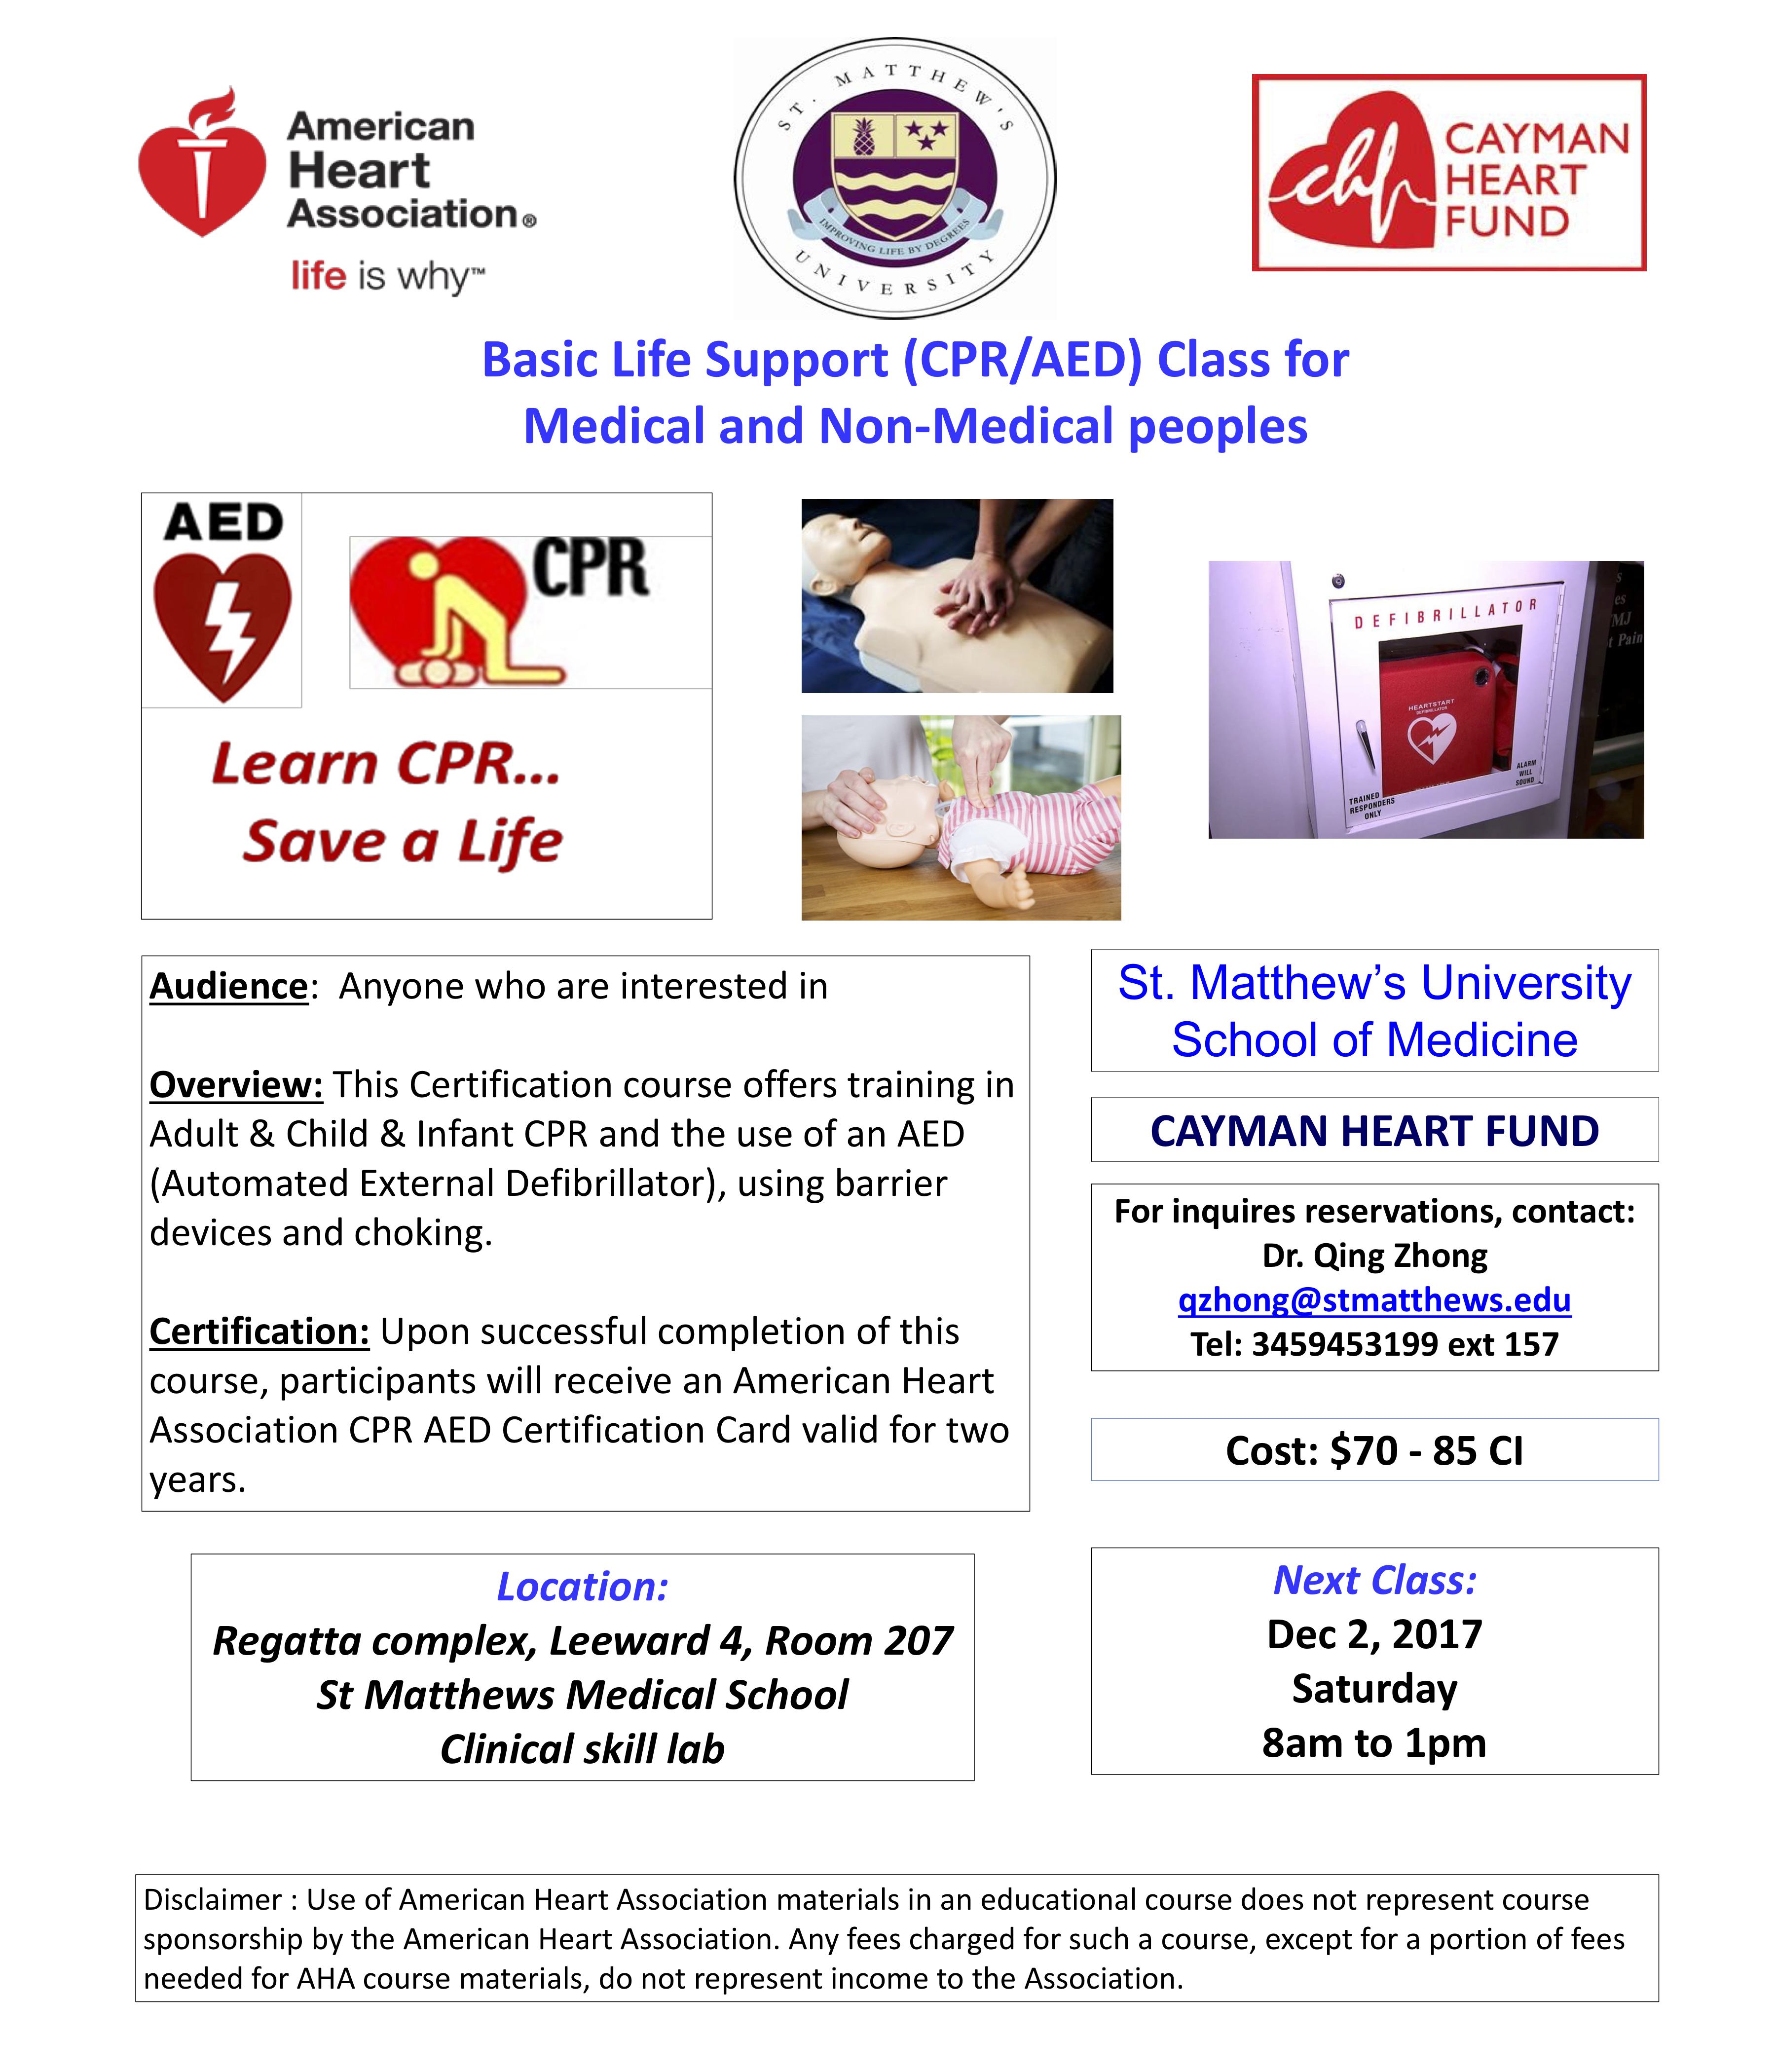 Basic life support cpraed class cayman heart fund bls and cpr courses in conjunction with the facility at st matthews university st matthews university is accredited as a training center by the 1betcityfo Gallery